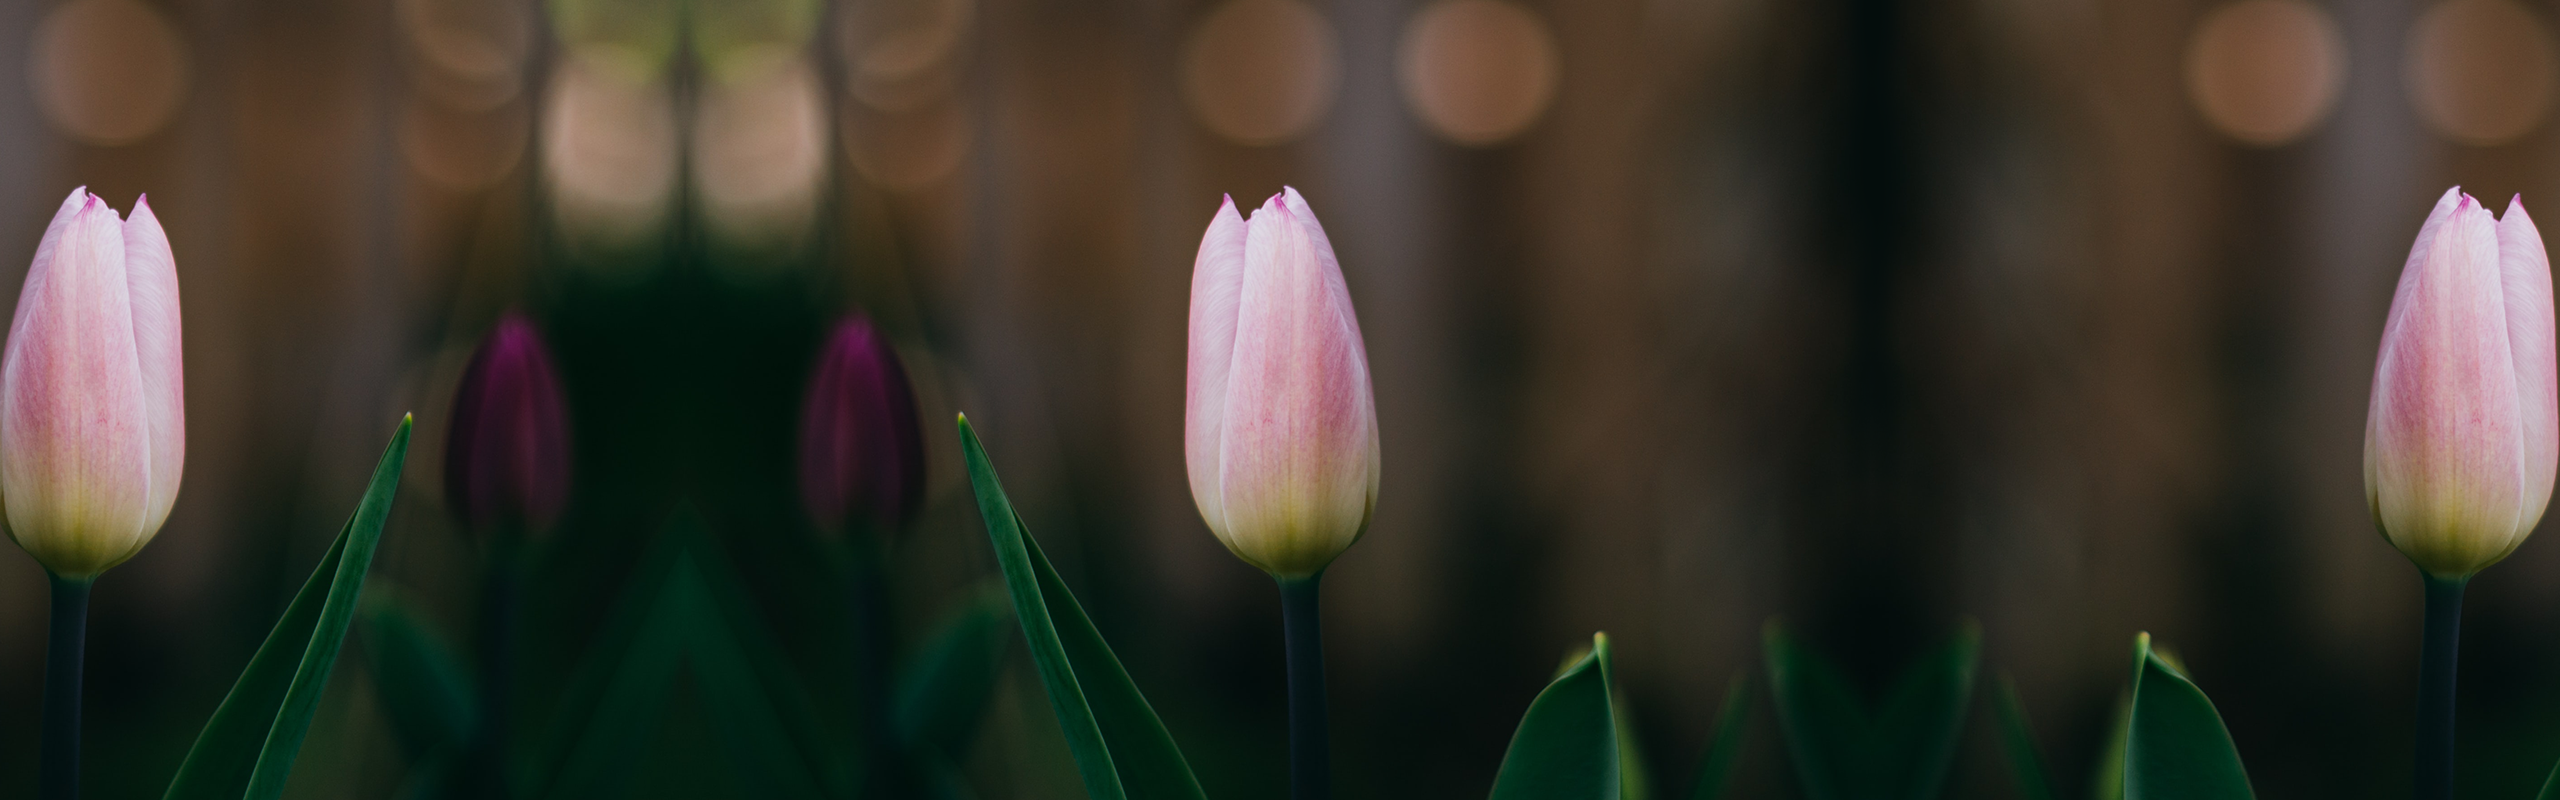 Calvinism in One Point: The Often-Forgotten Story of TULIP